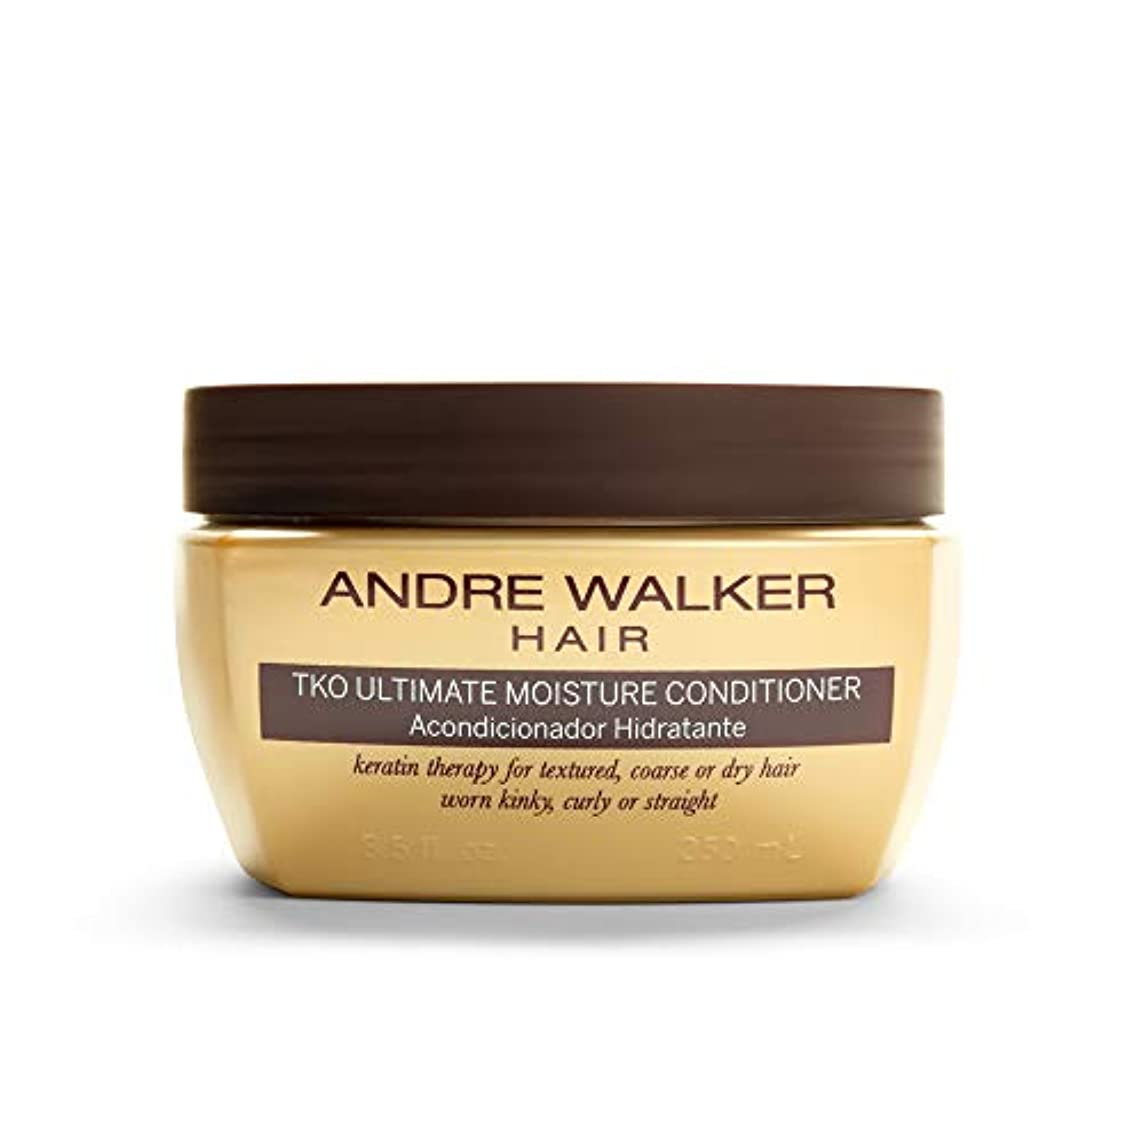 厚さ活気づけるマイナスAndre Walker Hair The Gold System TKO Ultimate Moisture Conditioner 8.5 fl oz. by Andre Walker Hair